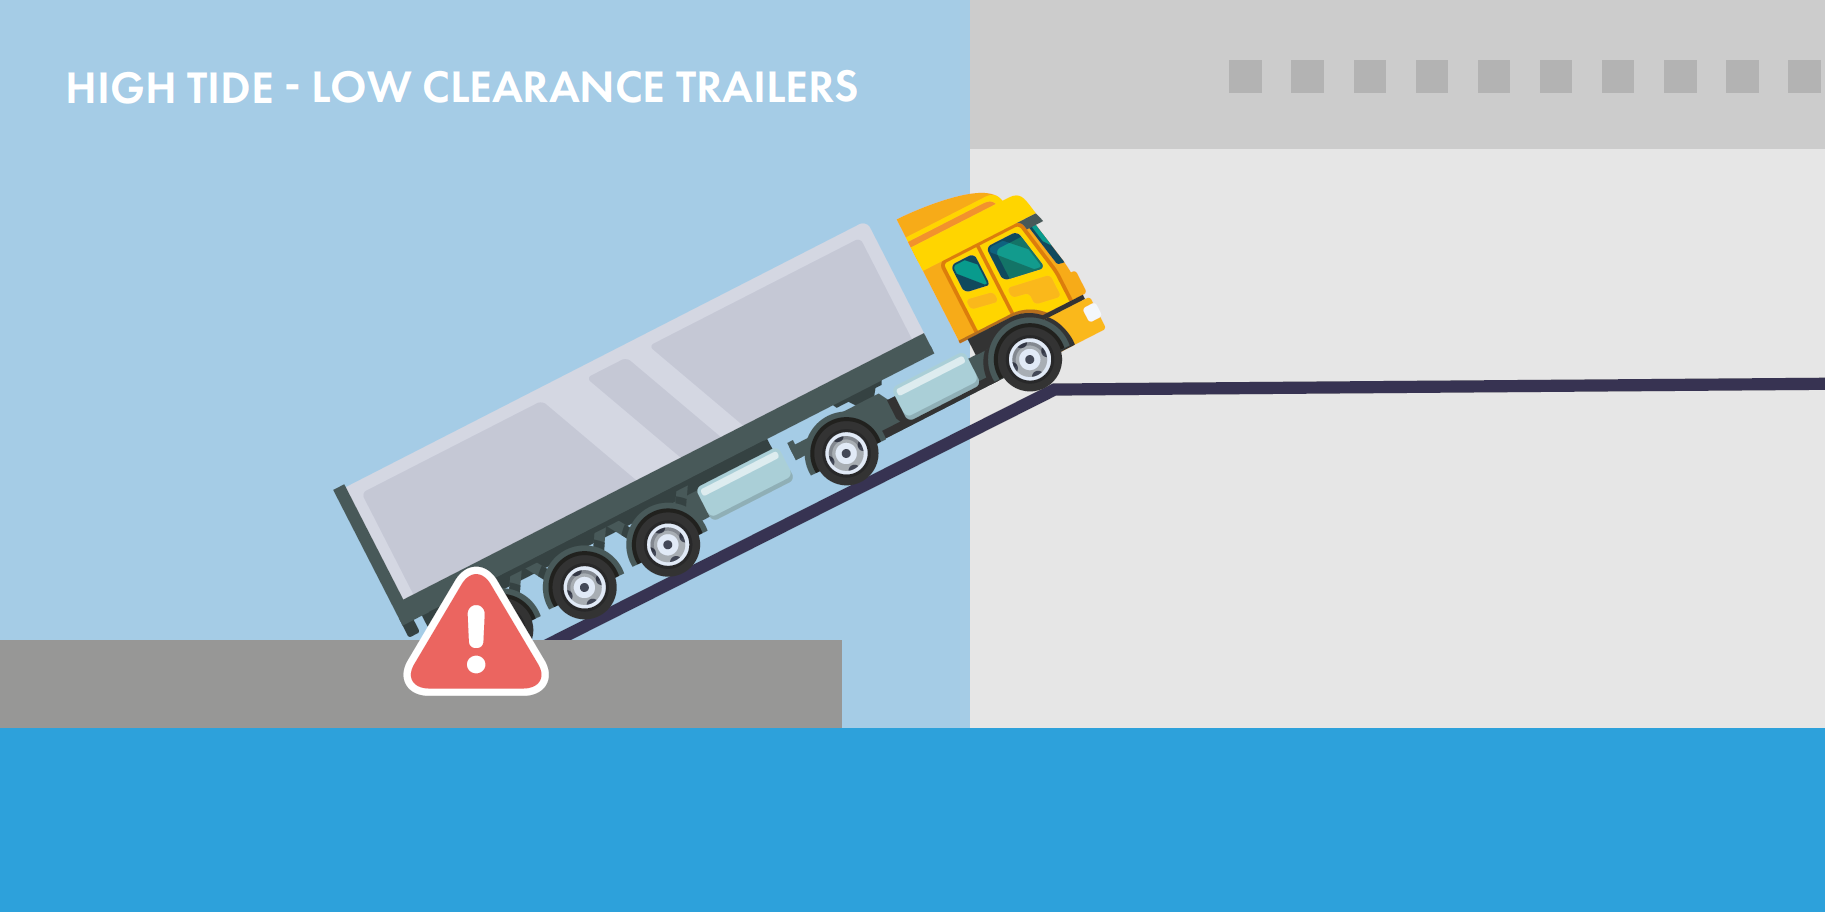 high tide, low clearance trailers